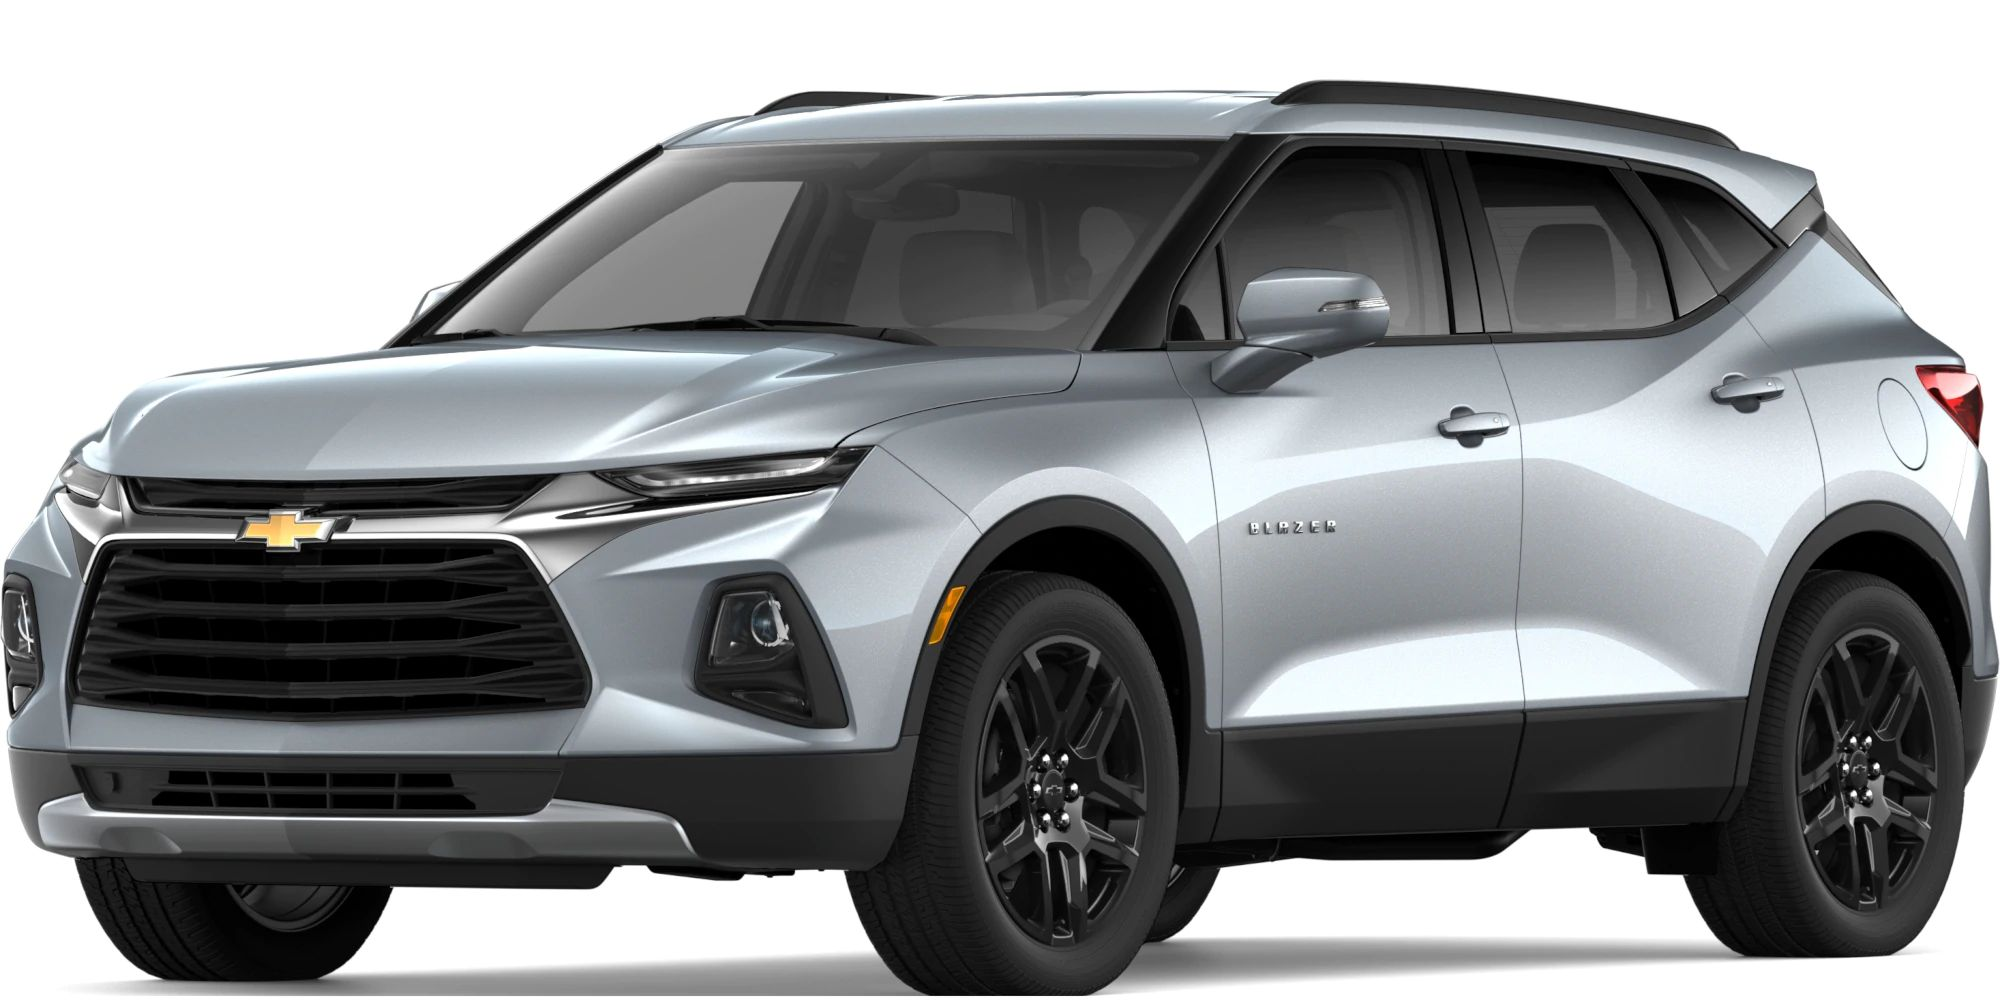 2019 Chevy Blazer Exterior Driver Side Front Profile in Silver Ice Metallic